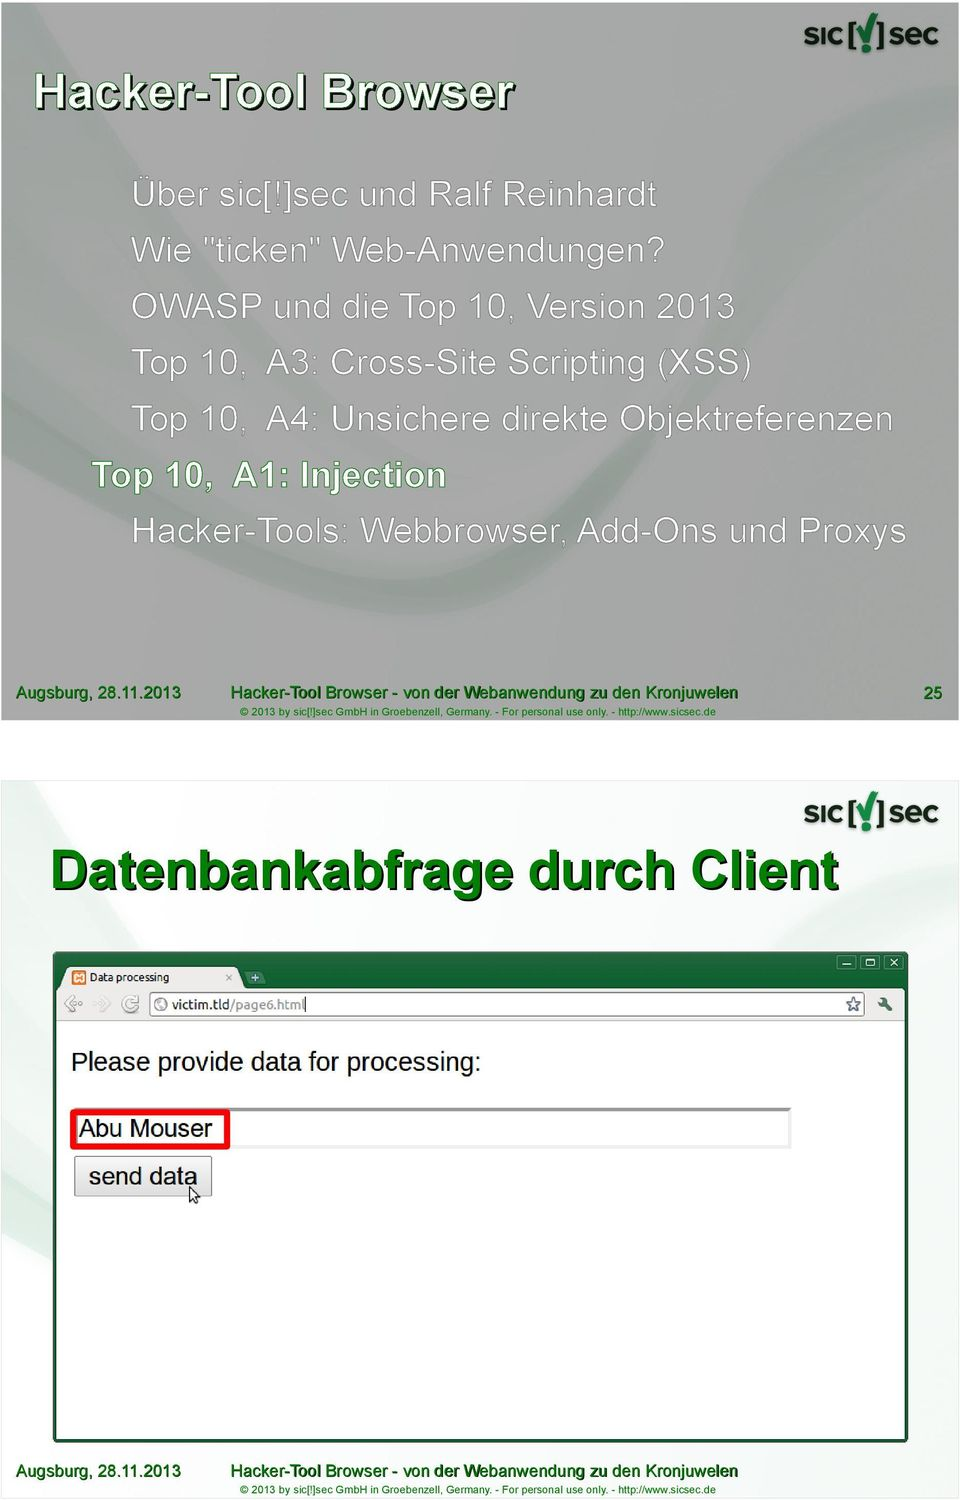 OWASP und die Top 10, Version 2013 Top 10, A3: Cross-Site Scripting (XSS)